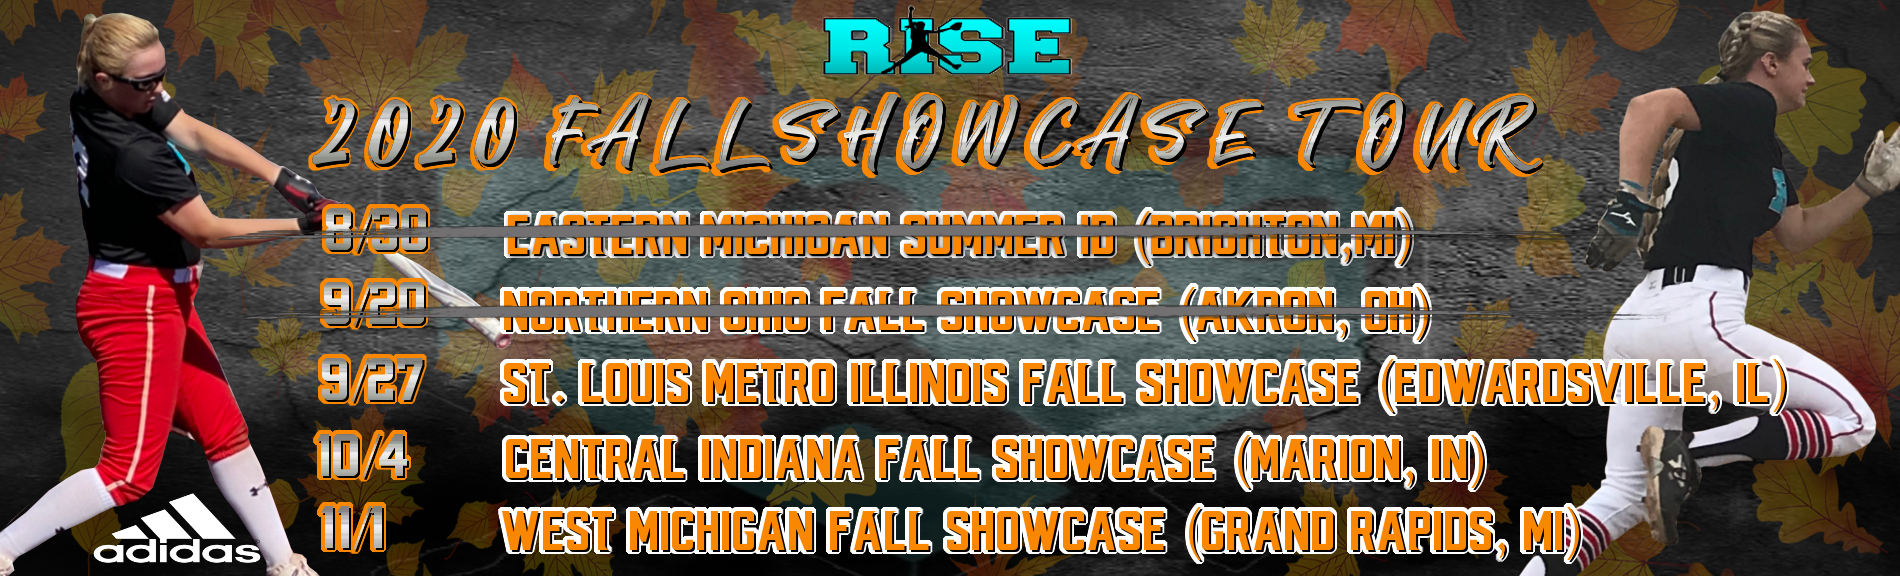 2020 RISE-Fall Showcase Tour